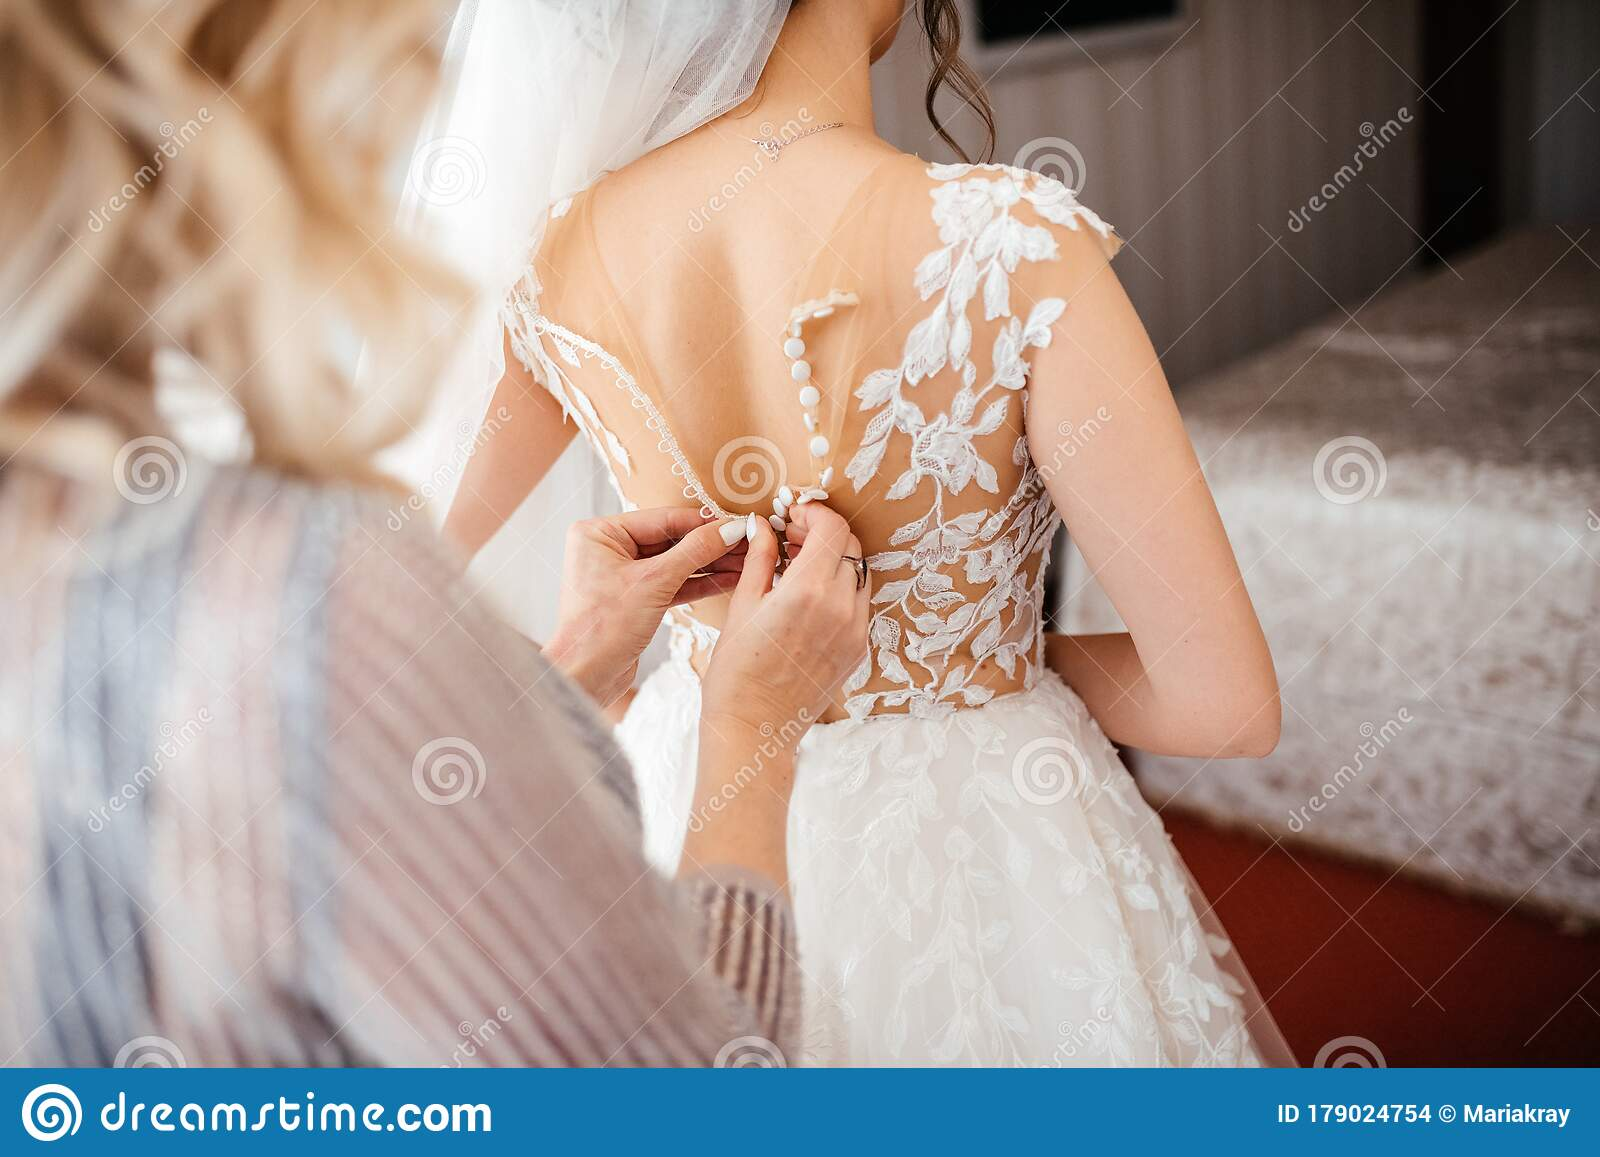 Mother Helping The Bride With Wedding Dress Preparation For The Wedding Day Before The Ceremony Stock Photo Image Of Lace Attractive 179024754,Party Dress For Wedding Guest